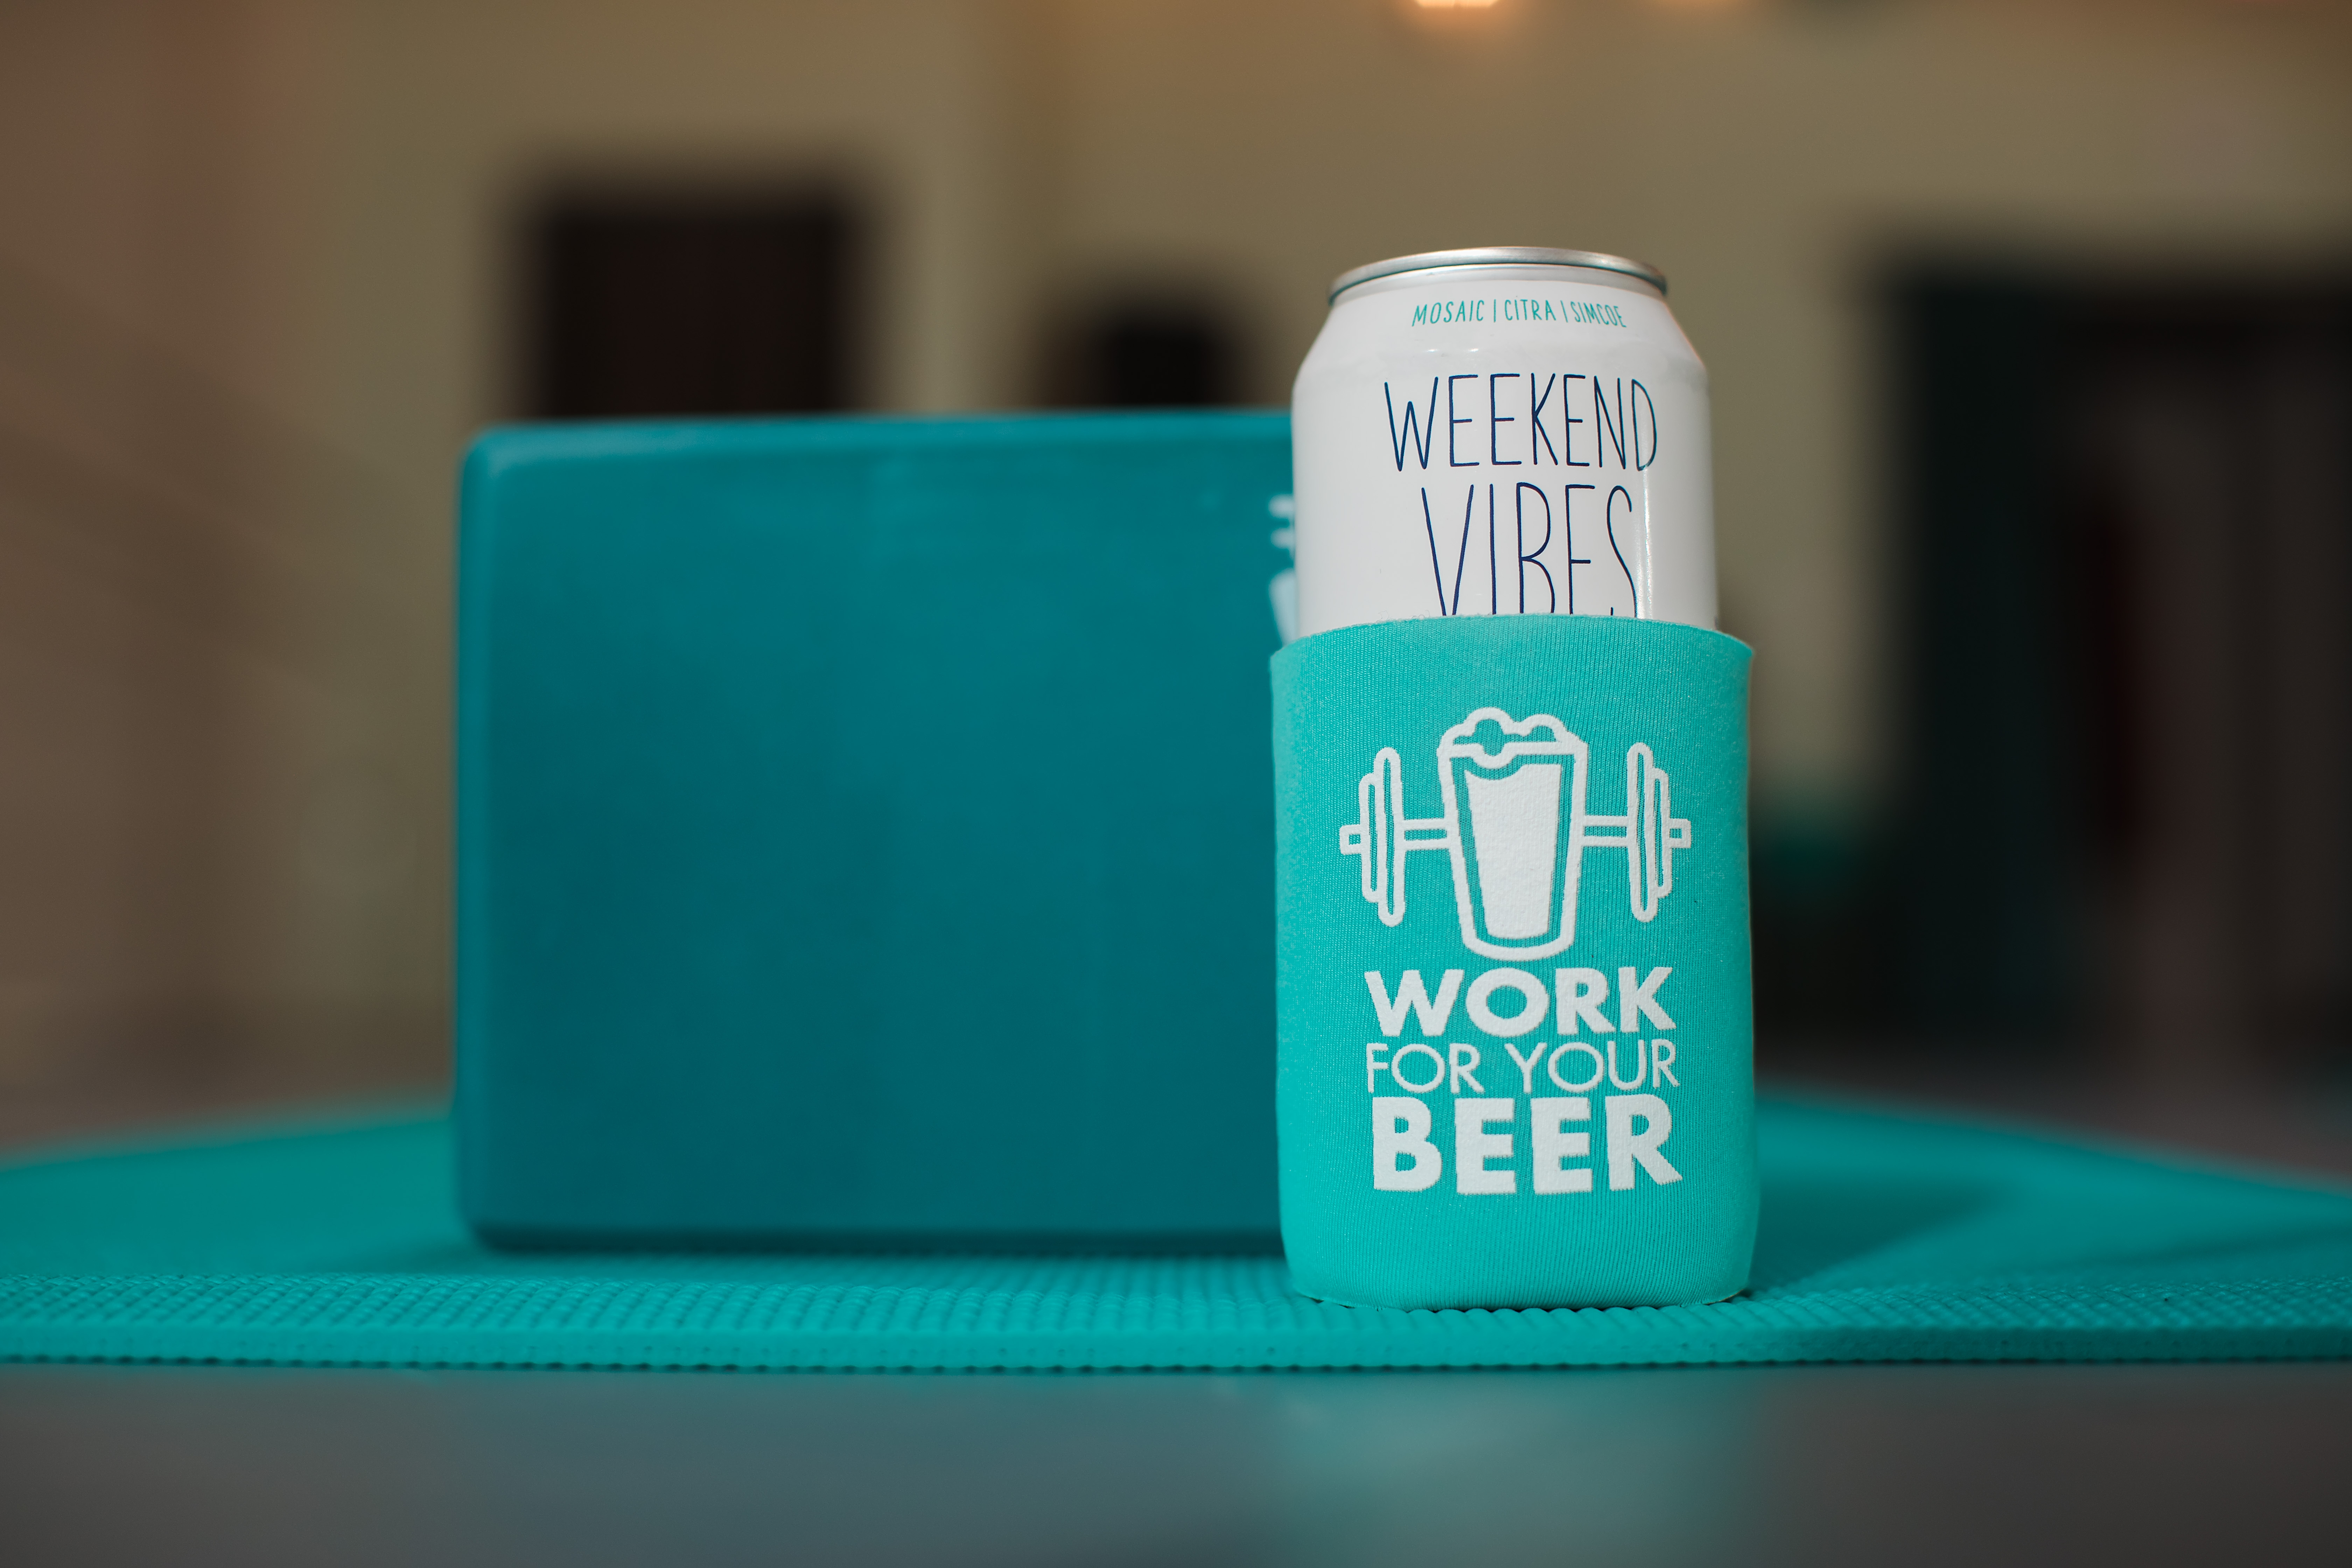 Photo credit: Work For Your Beer{ }